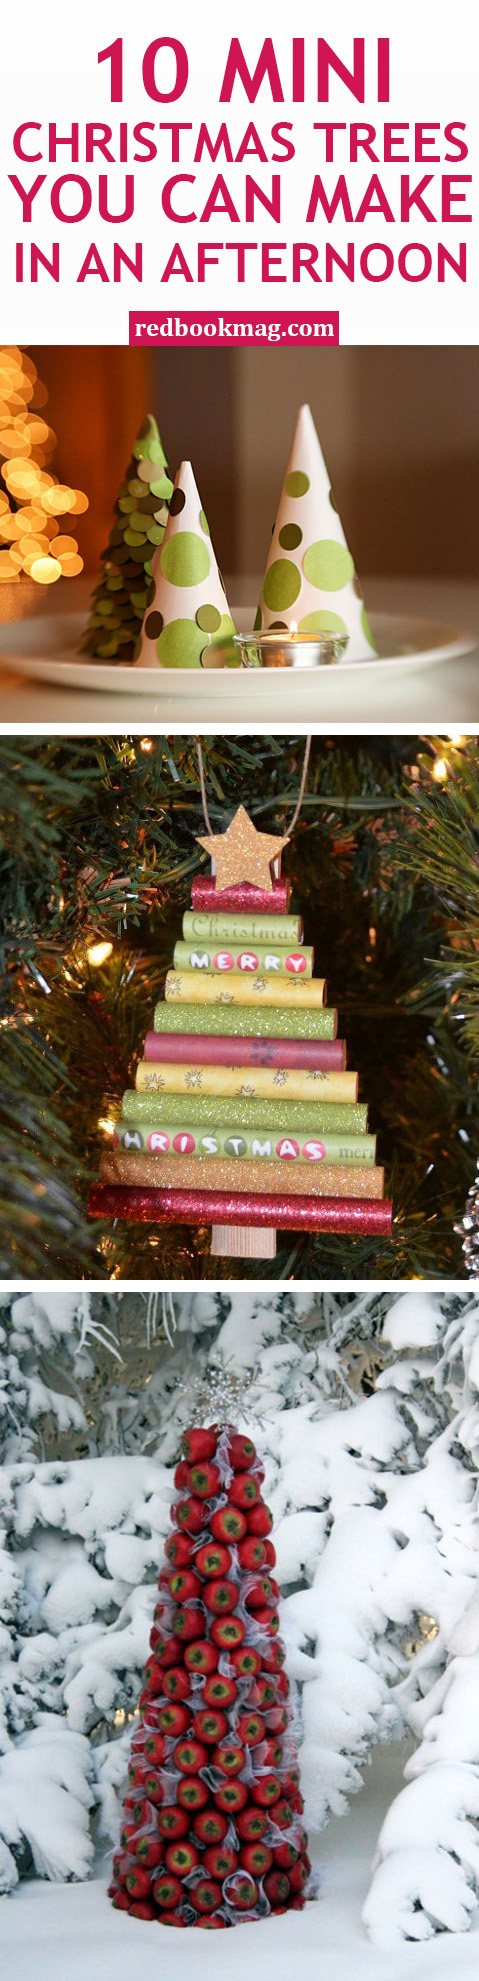 MINI DIY CHRISTMAS TREES: These Christmas crafts are fun, festive, and can be created by anyone—no matter your skill level! With these tutorials, you'll learn how to make cute trees out of apples, spindles, paper, snow cones, wood, driftwood, shells, picture frames, books, and more! Click through for the holiday hacks and tutorials will be fun for the entire family this holiday season!